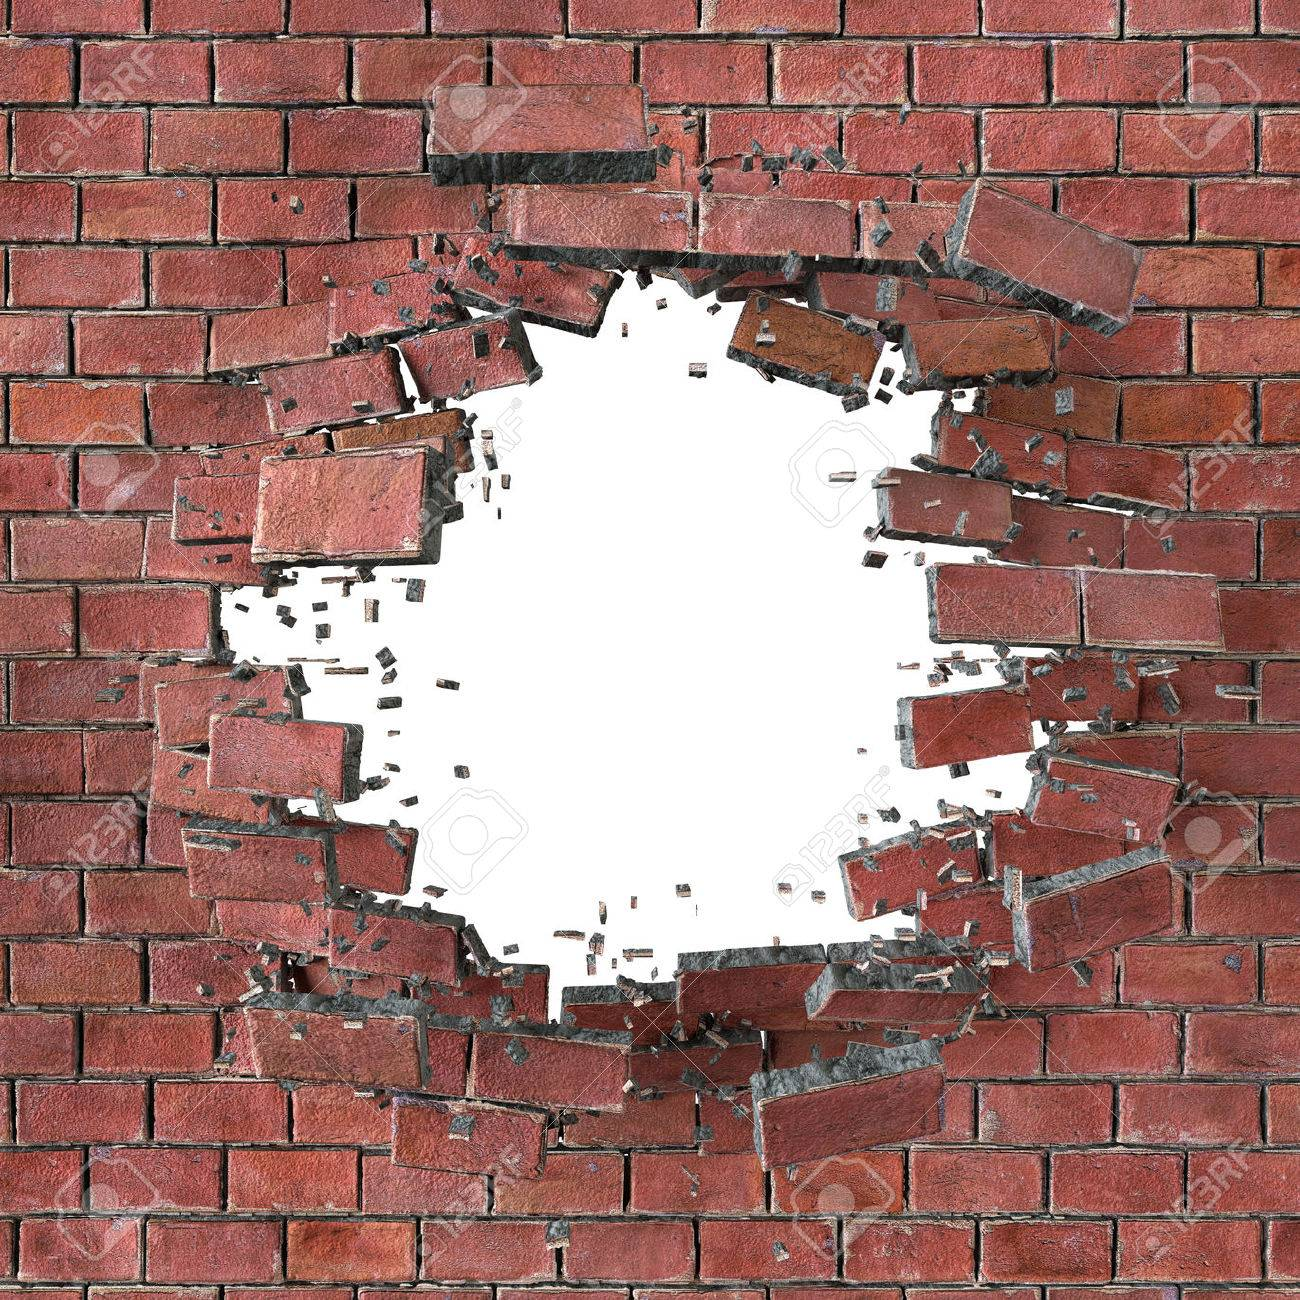 Cracked brick wall drawing brick wall - Broken Wall 3d Render Illustration Explosion Cracked Red Brick Wall Bullet